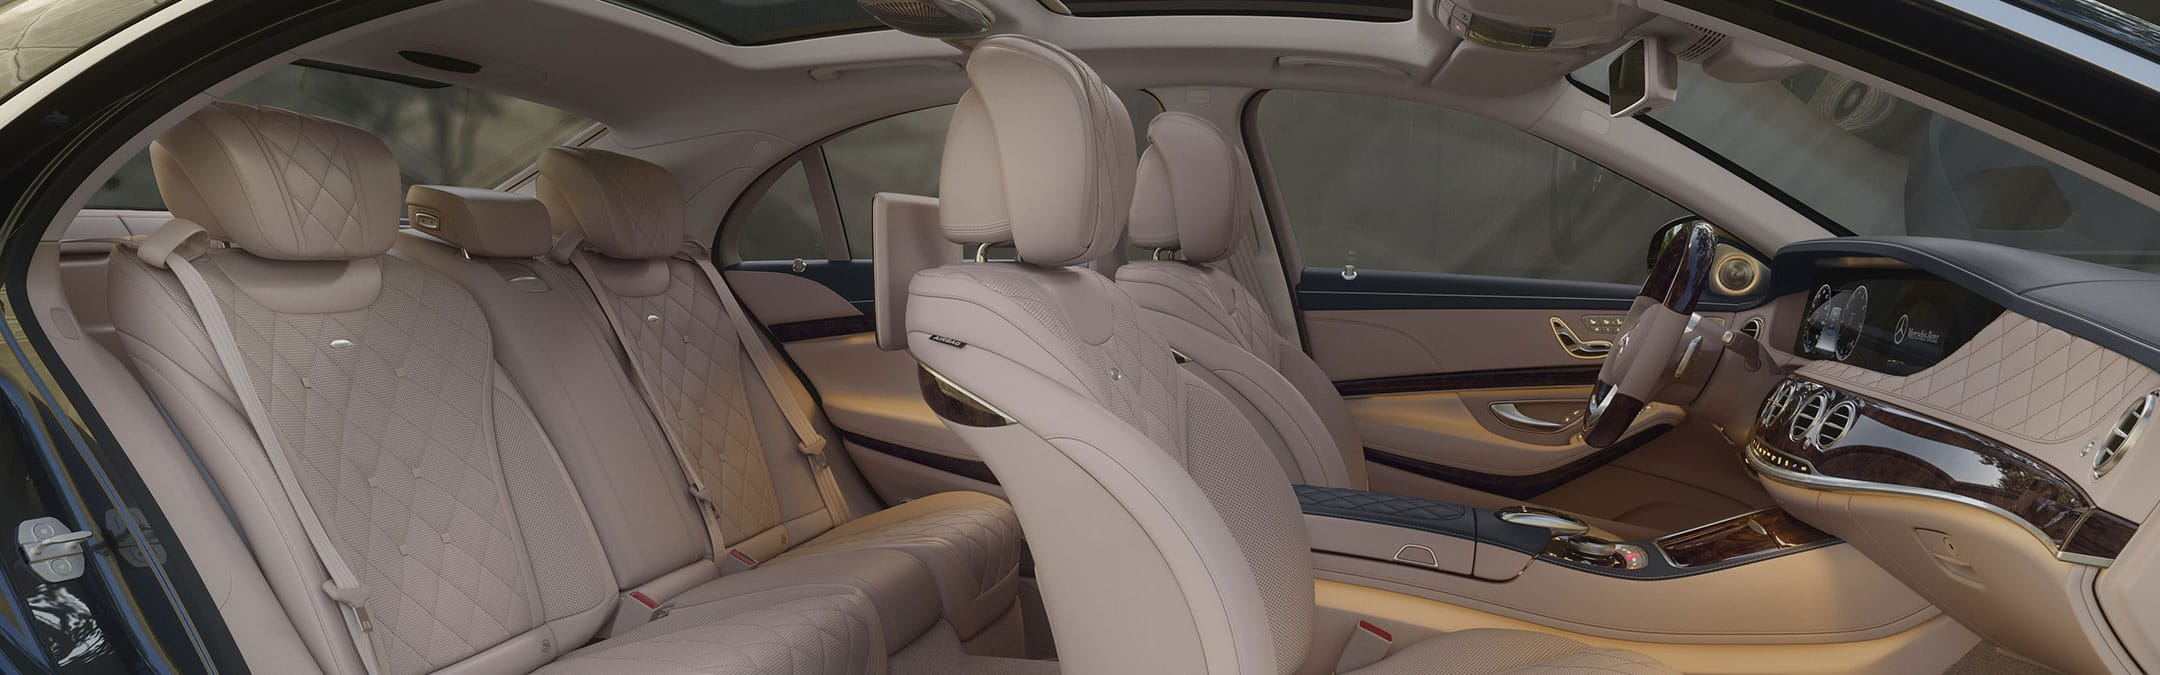 MERCEDES BENZ S-550 INTERIOR - LUXURY CHAUFFEUR SERVICE IN LOS ANGELES